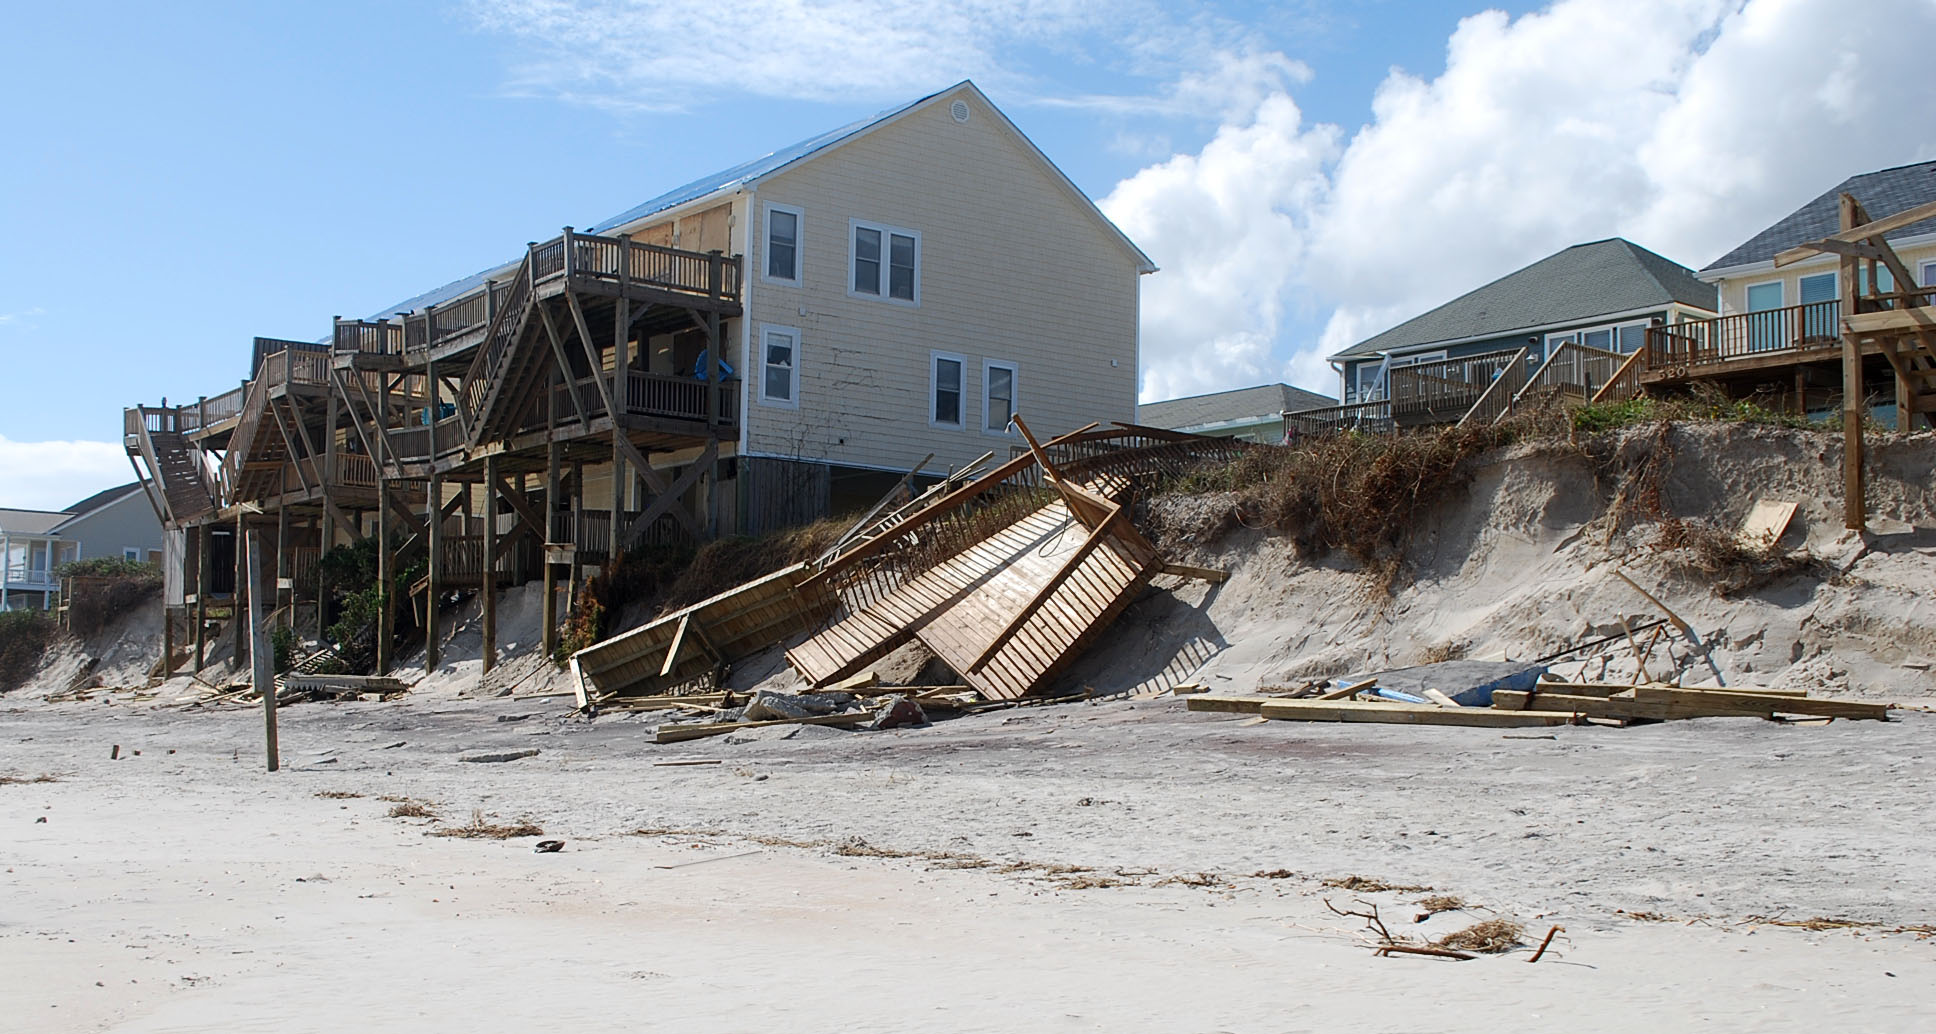 Hurricane Florence Aftermath At North Topsail Beach, NC